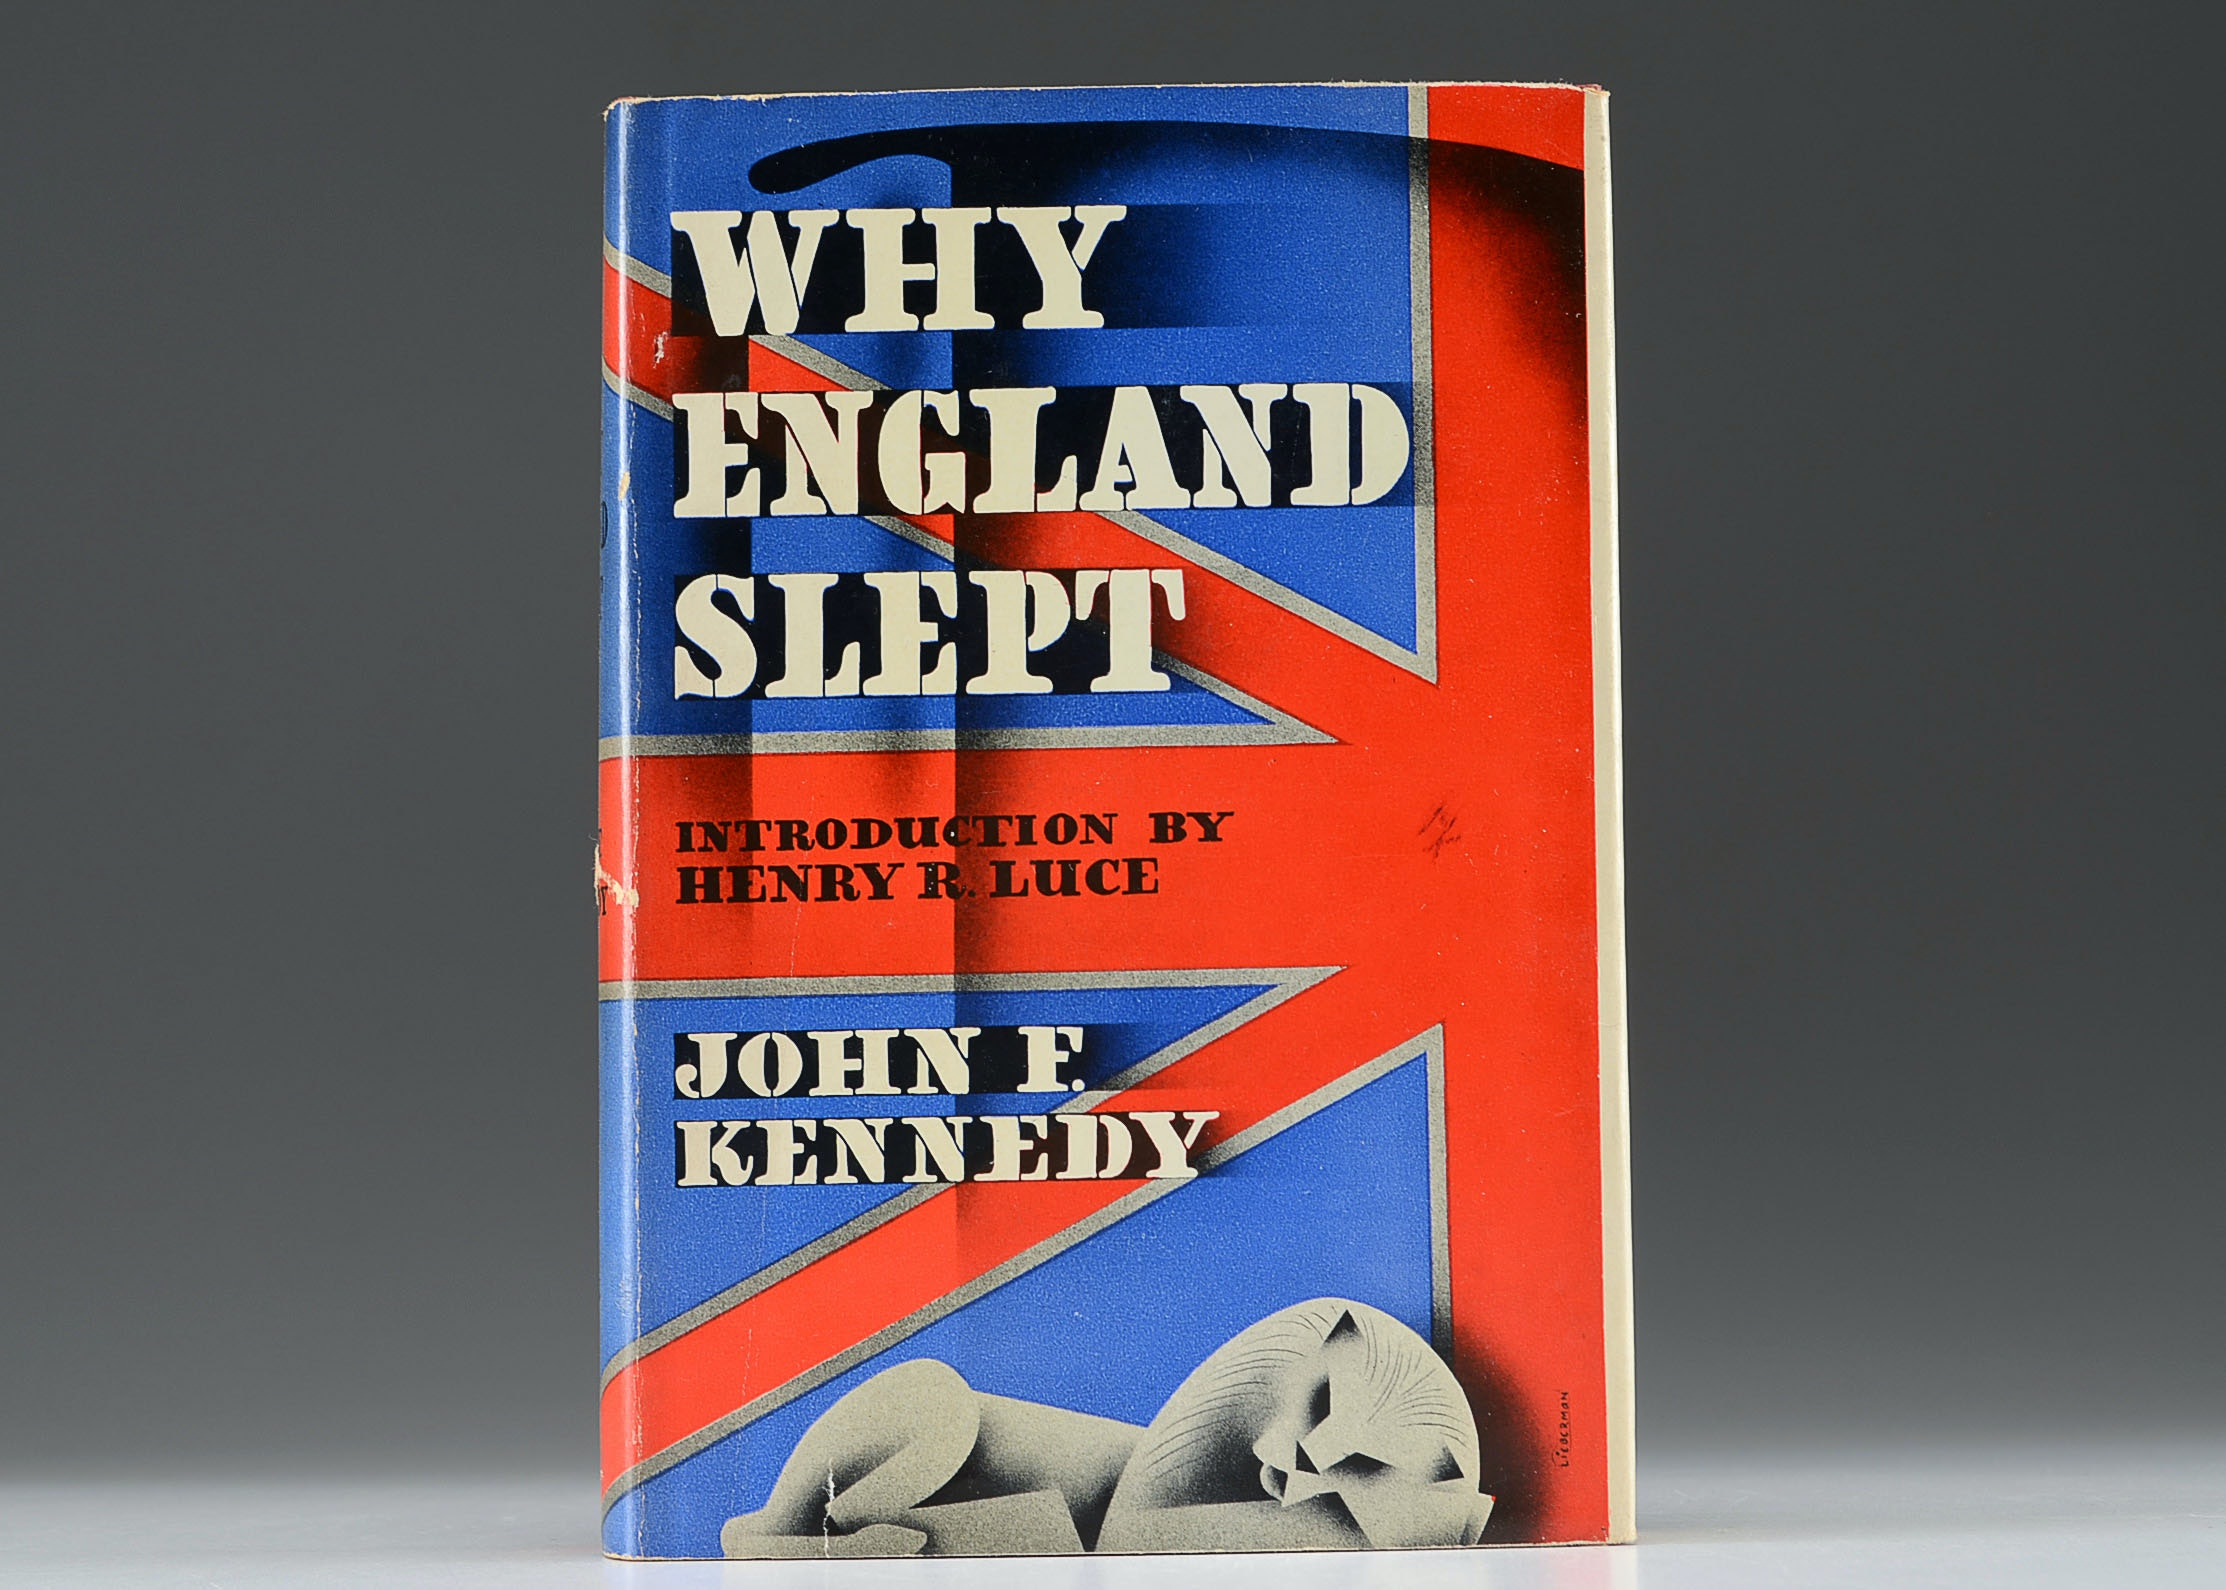 jfk thesis why england slept